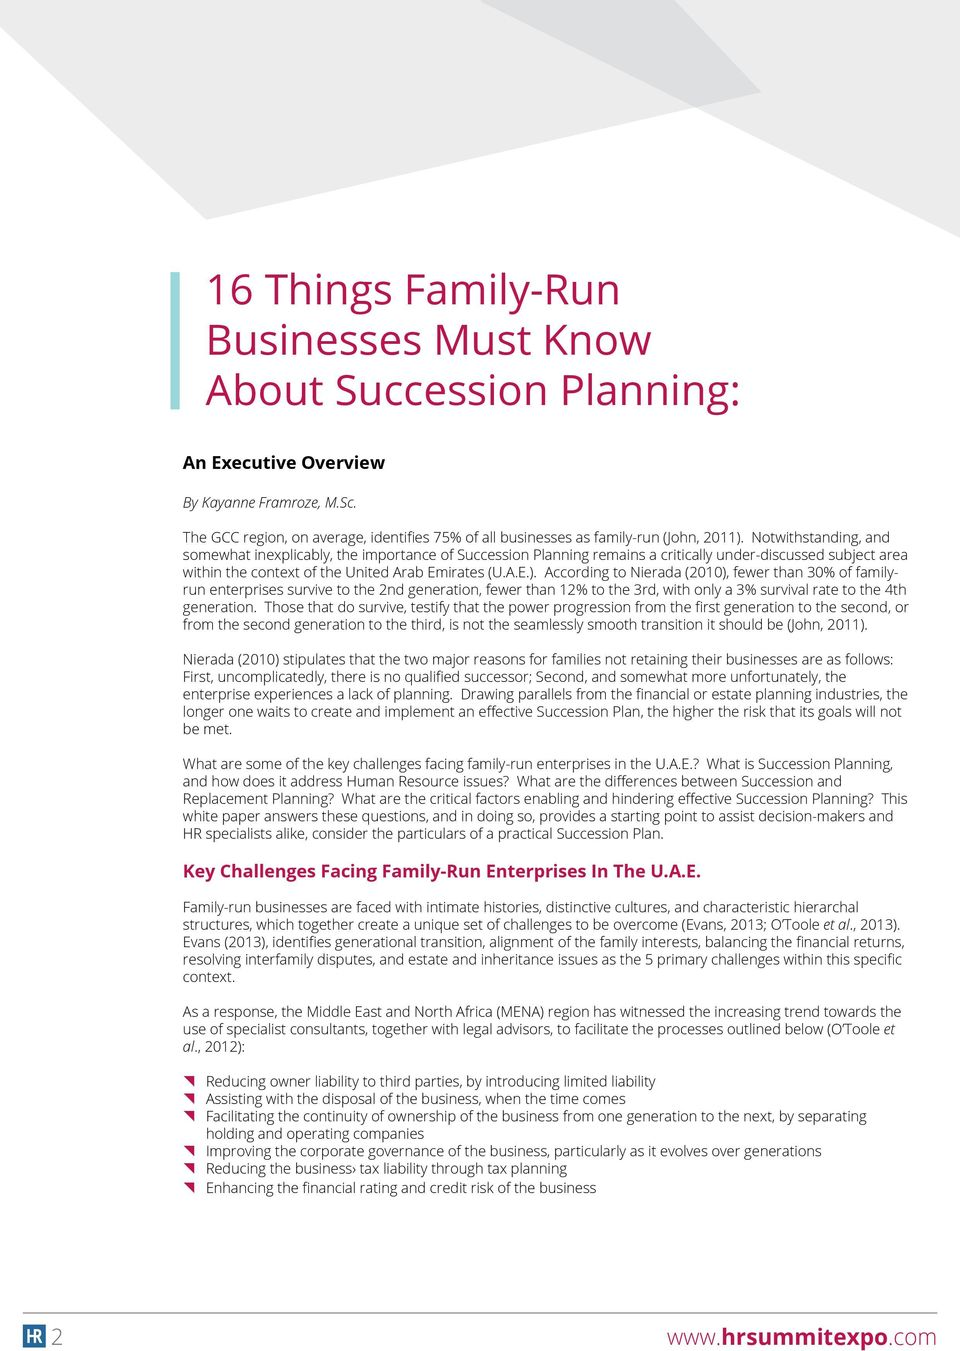 Notwithstanding, and somewhat inexplicably, the importance of Succession Planning remains a critically under-discussed subject area within the context of the United Arab Emirates (U.A.E.).